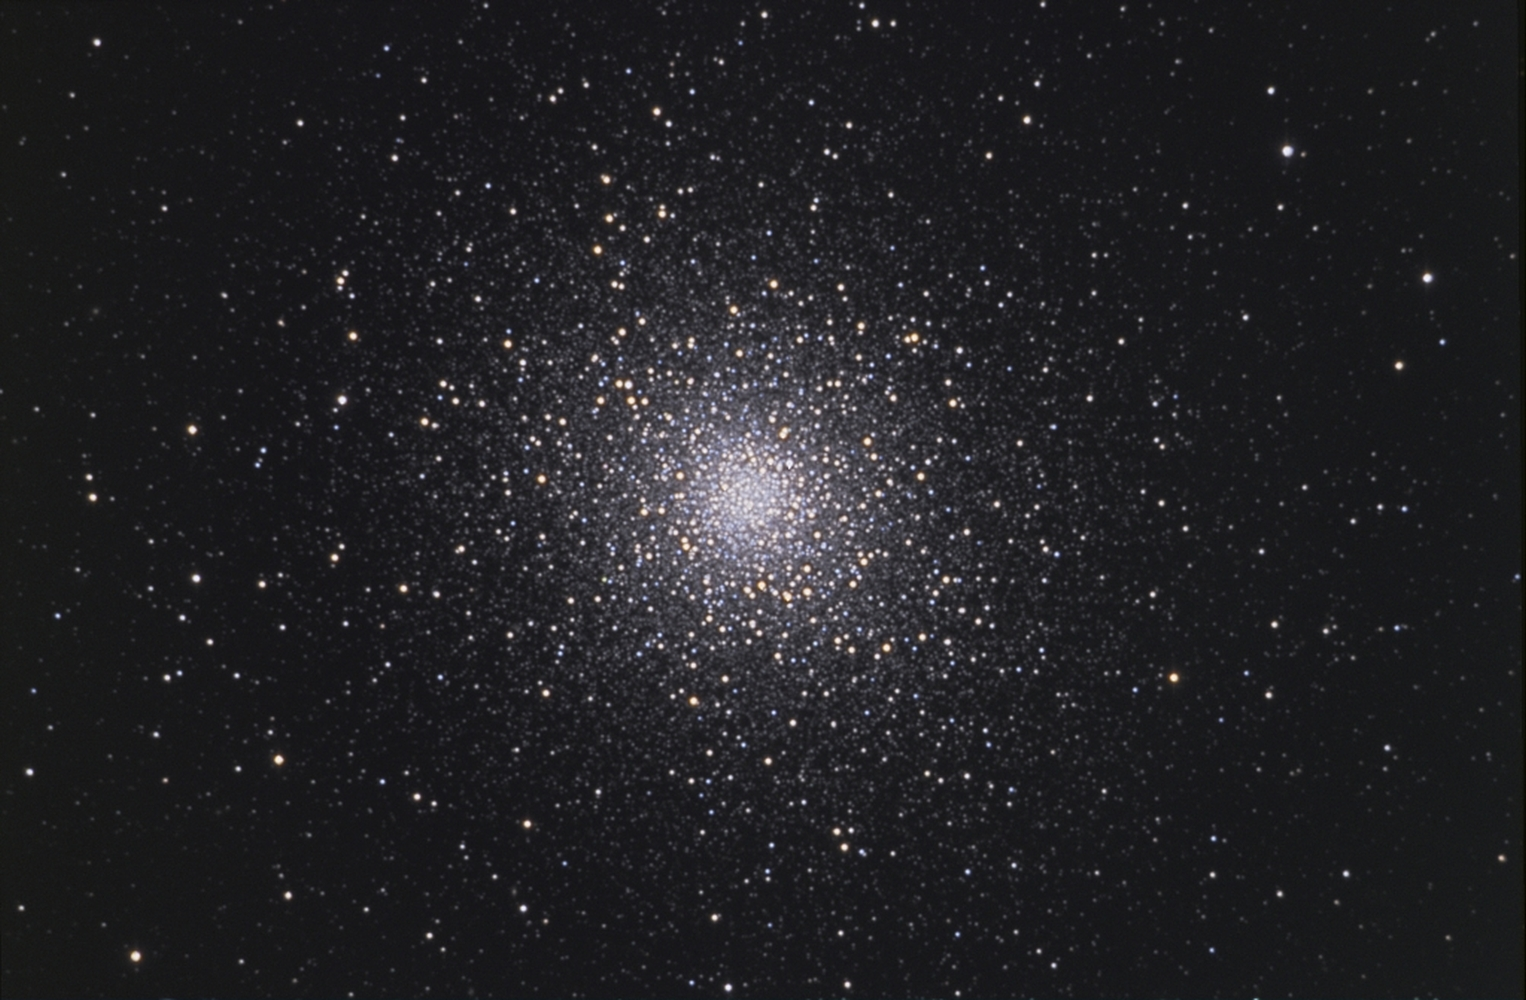 M5 from BMV Observatories